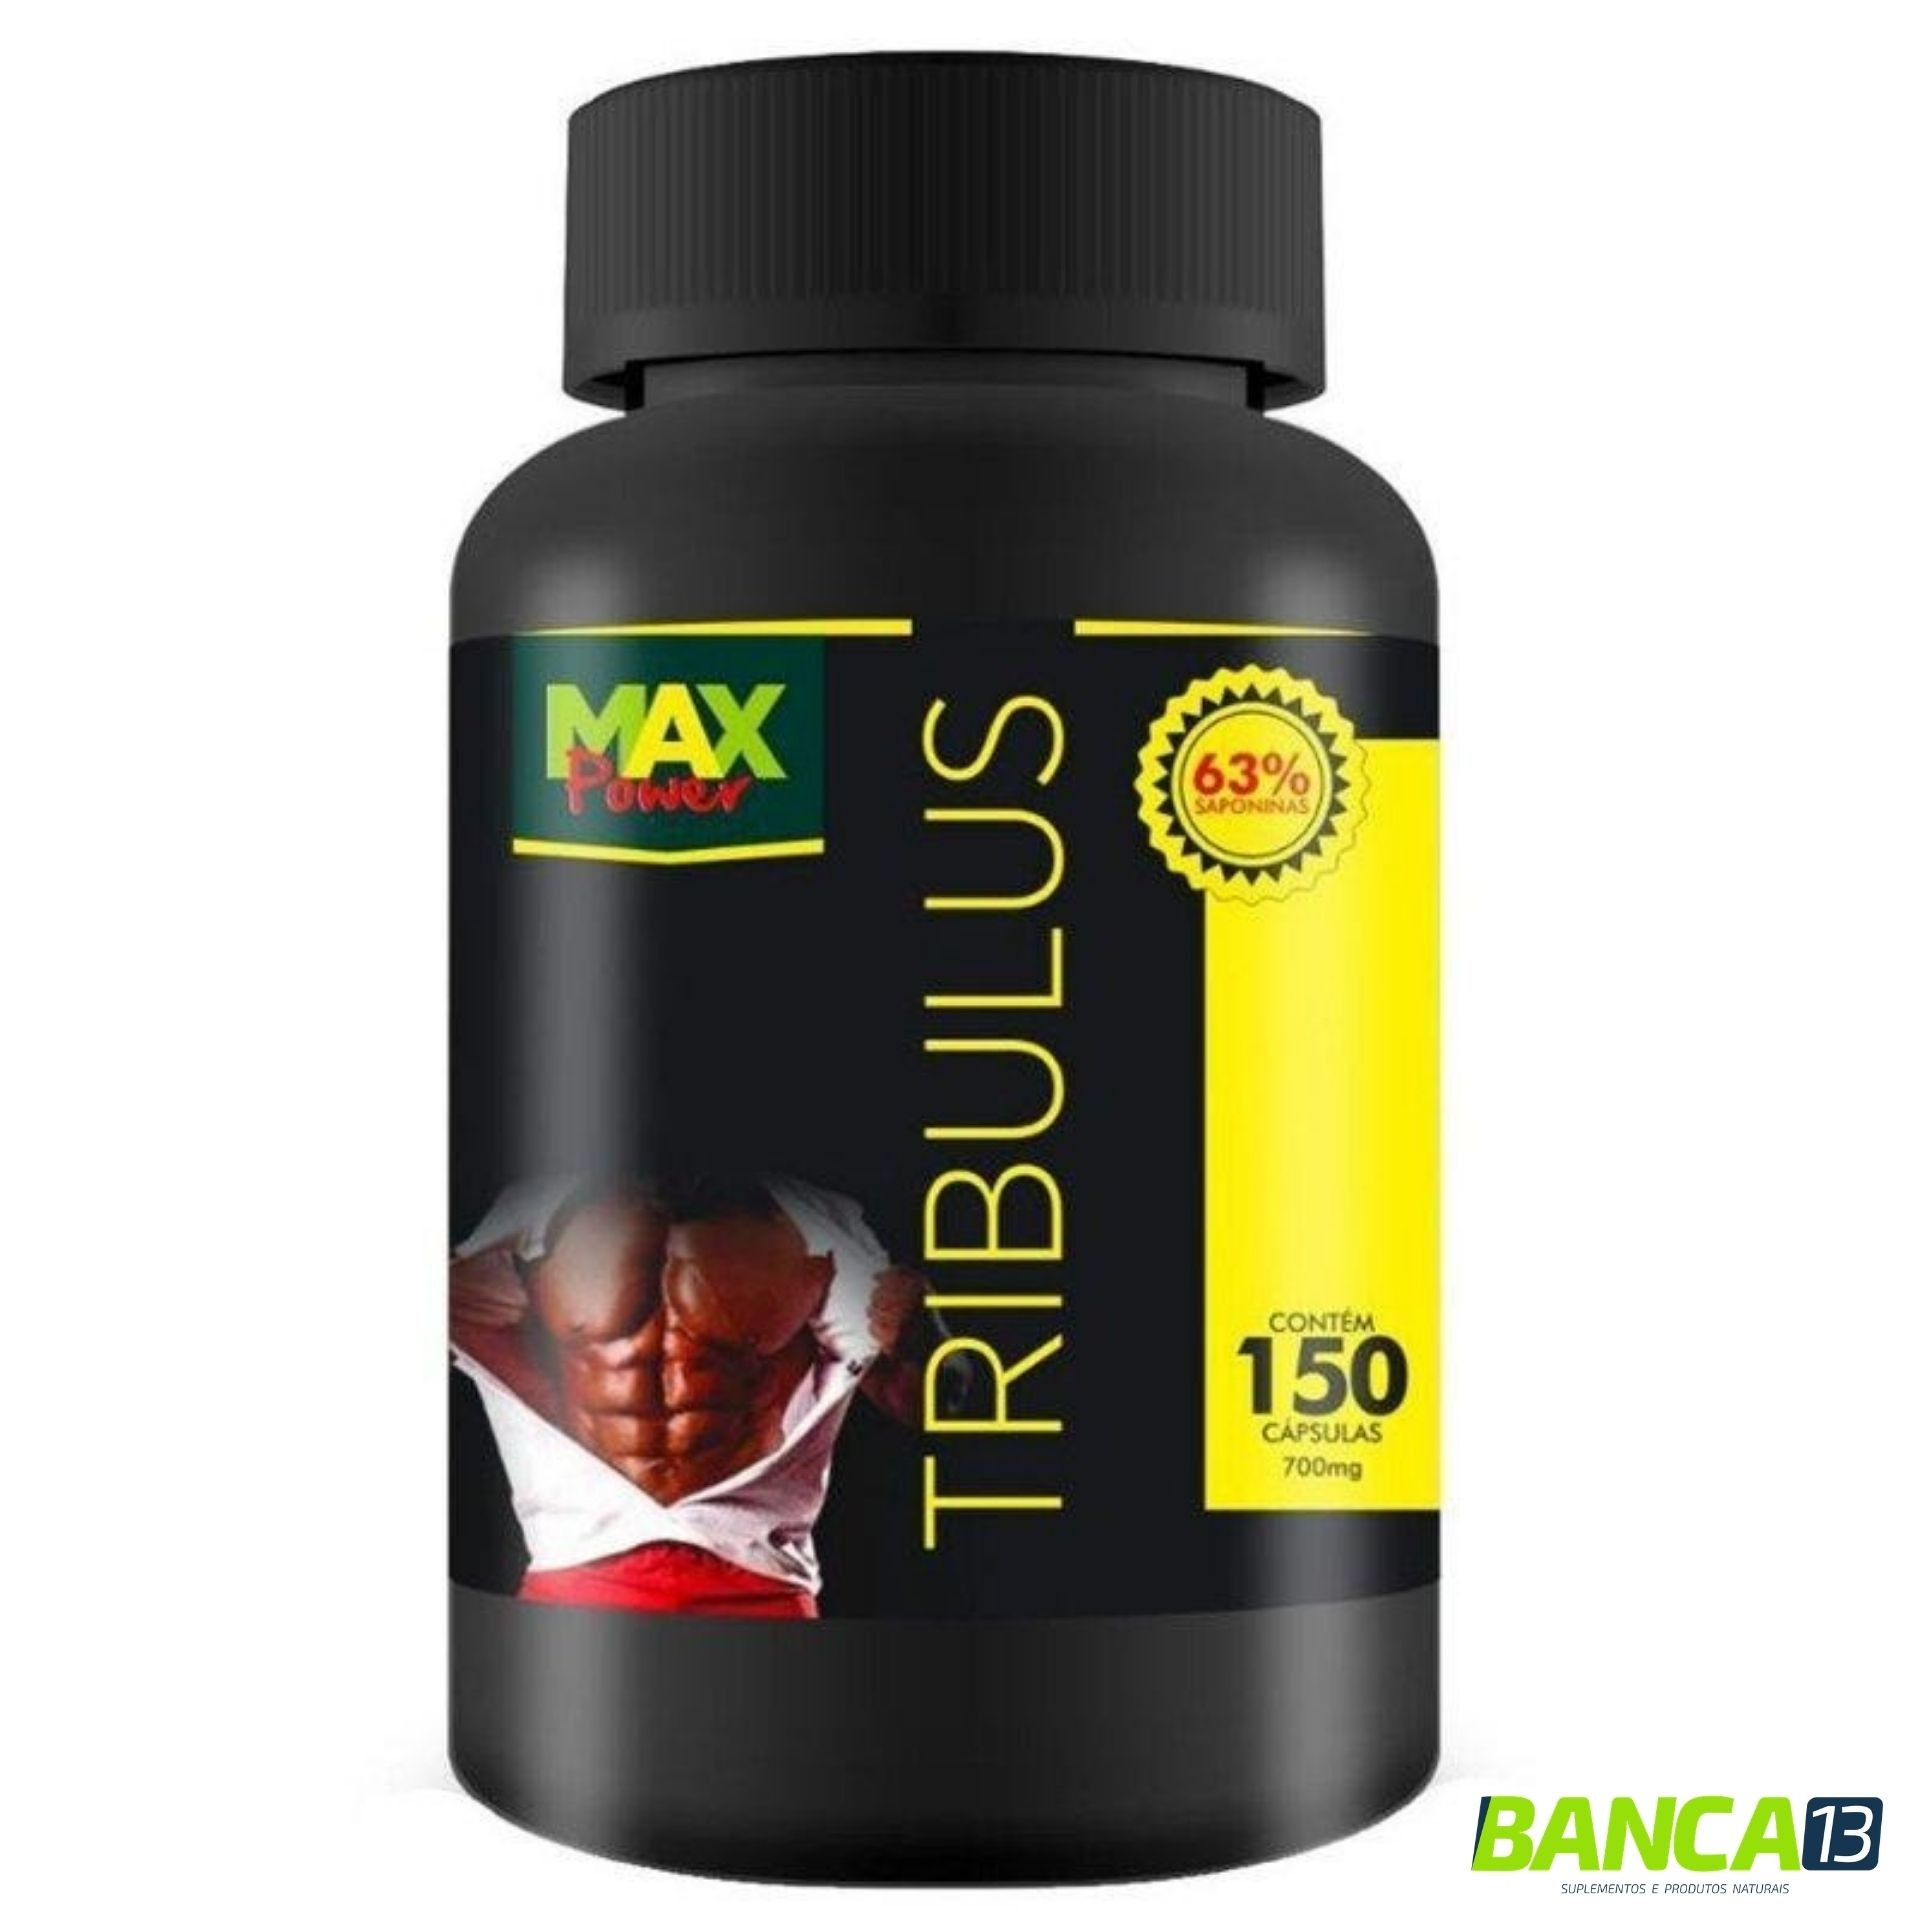 TRIBULLUS TERRESTRIS 150 cápsulas 700mg - MAX POWER